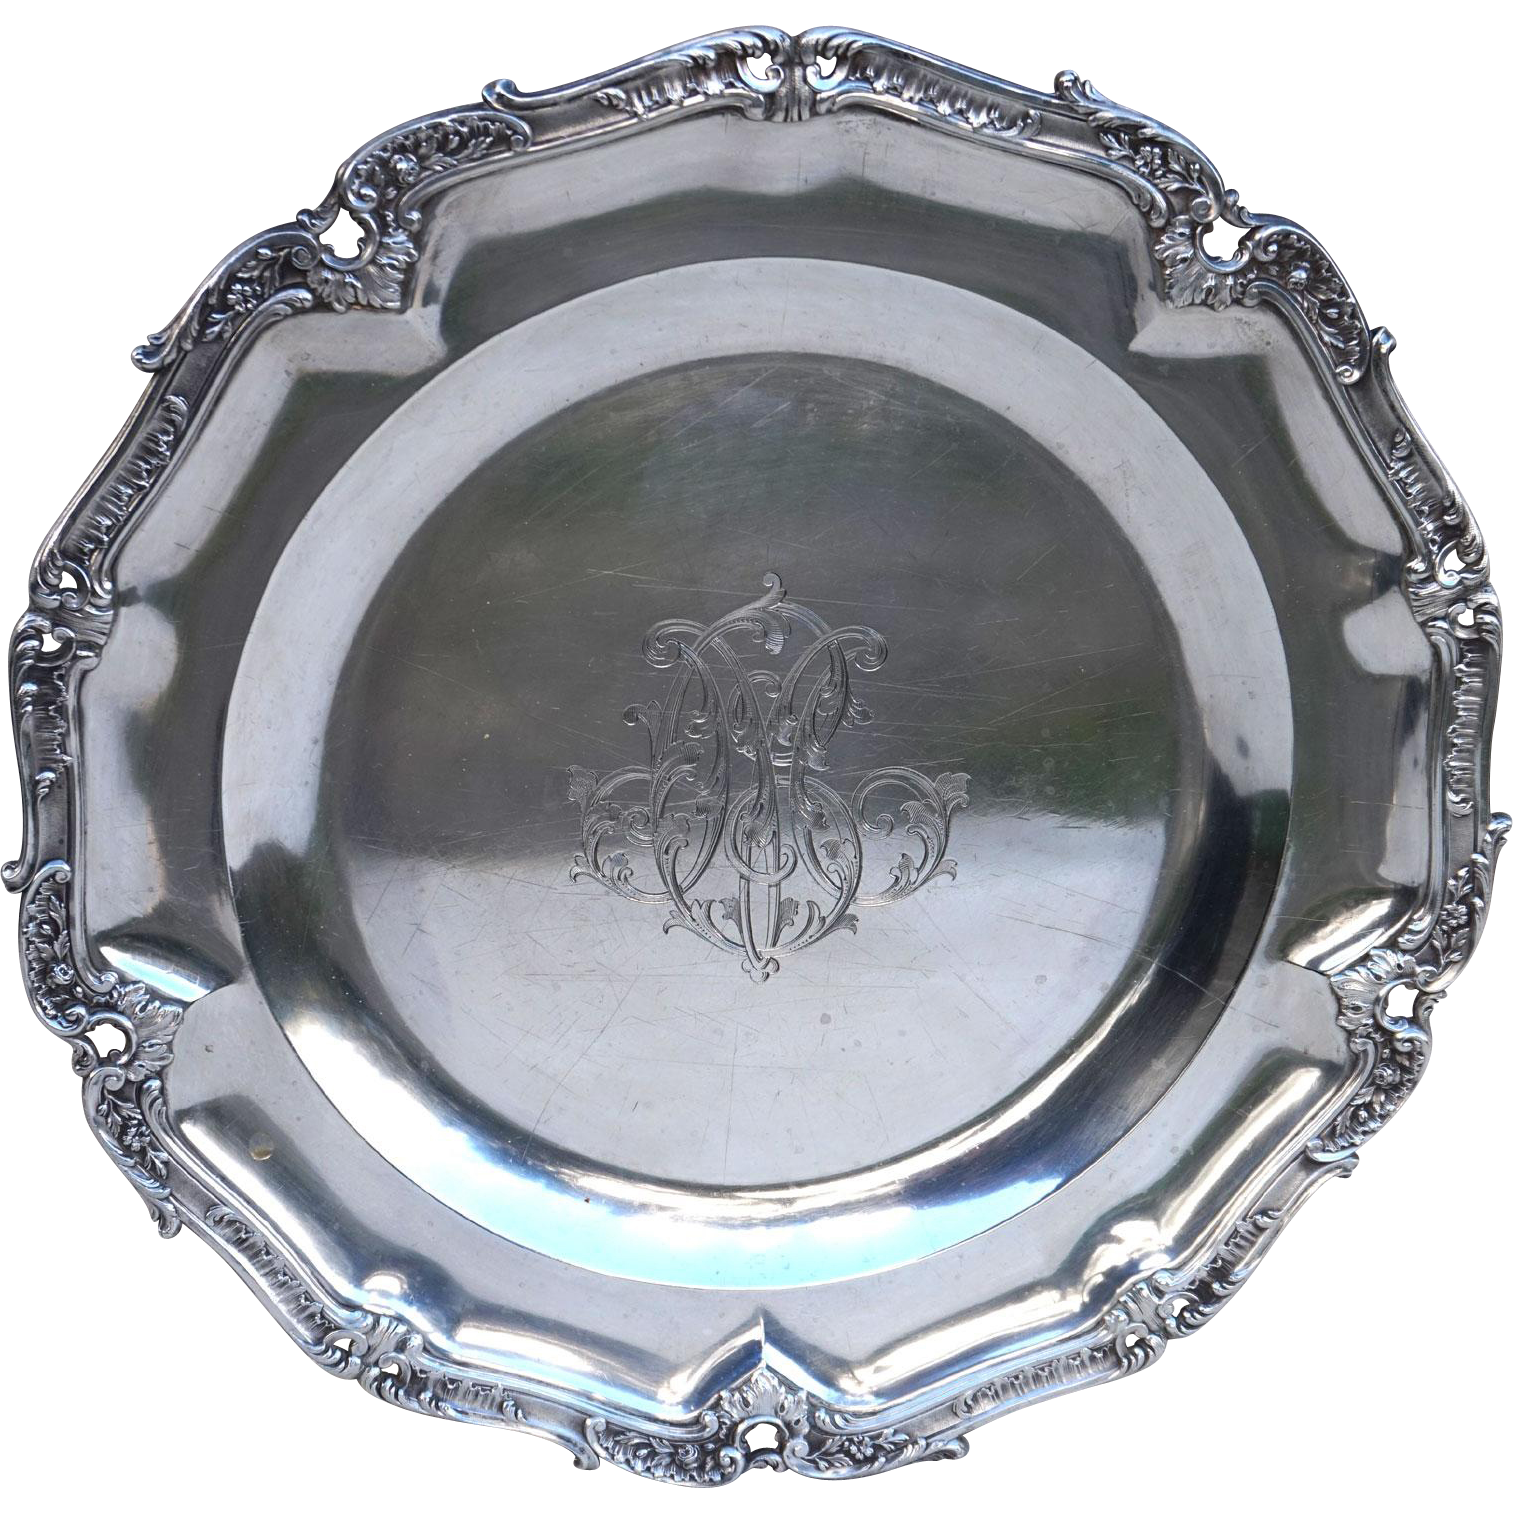 French Emile Puiforcat Sterling Silver Scalloped Engraved Serving Dish Mono MC Paris 1880